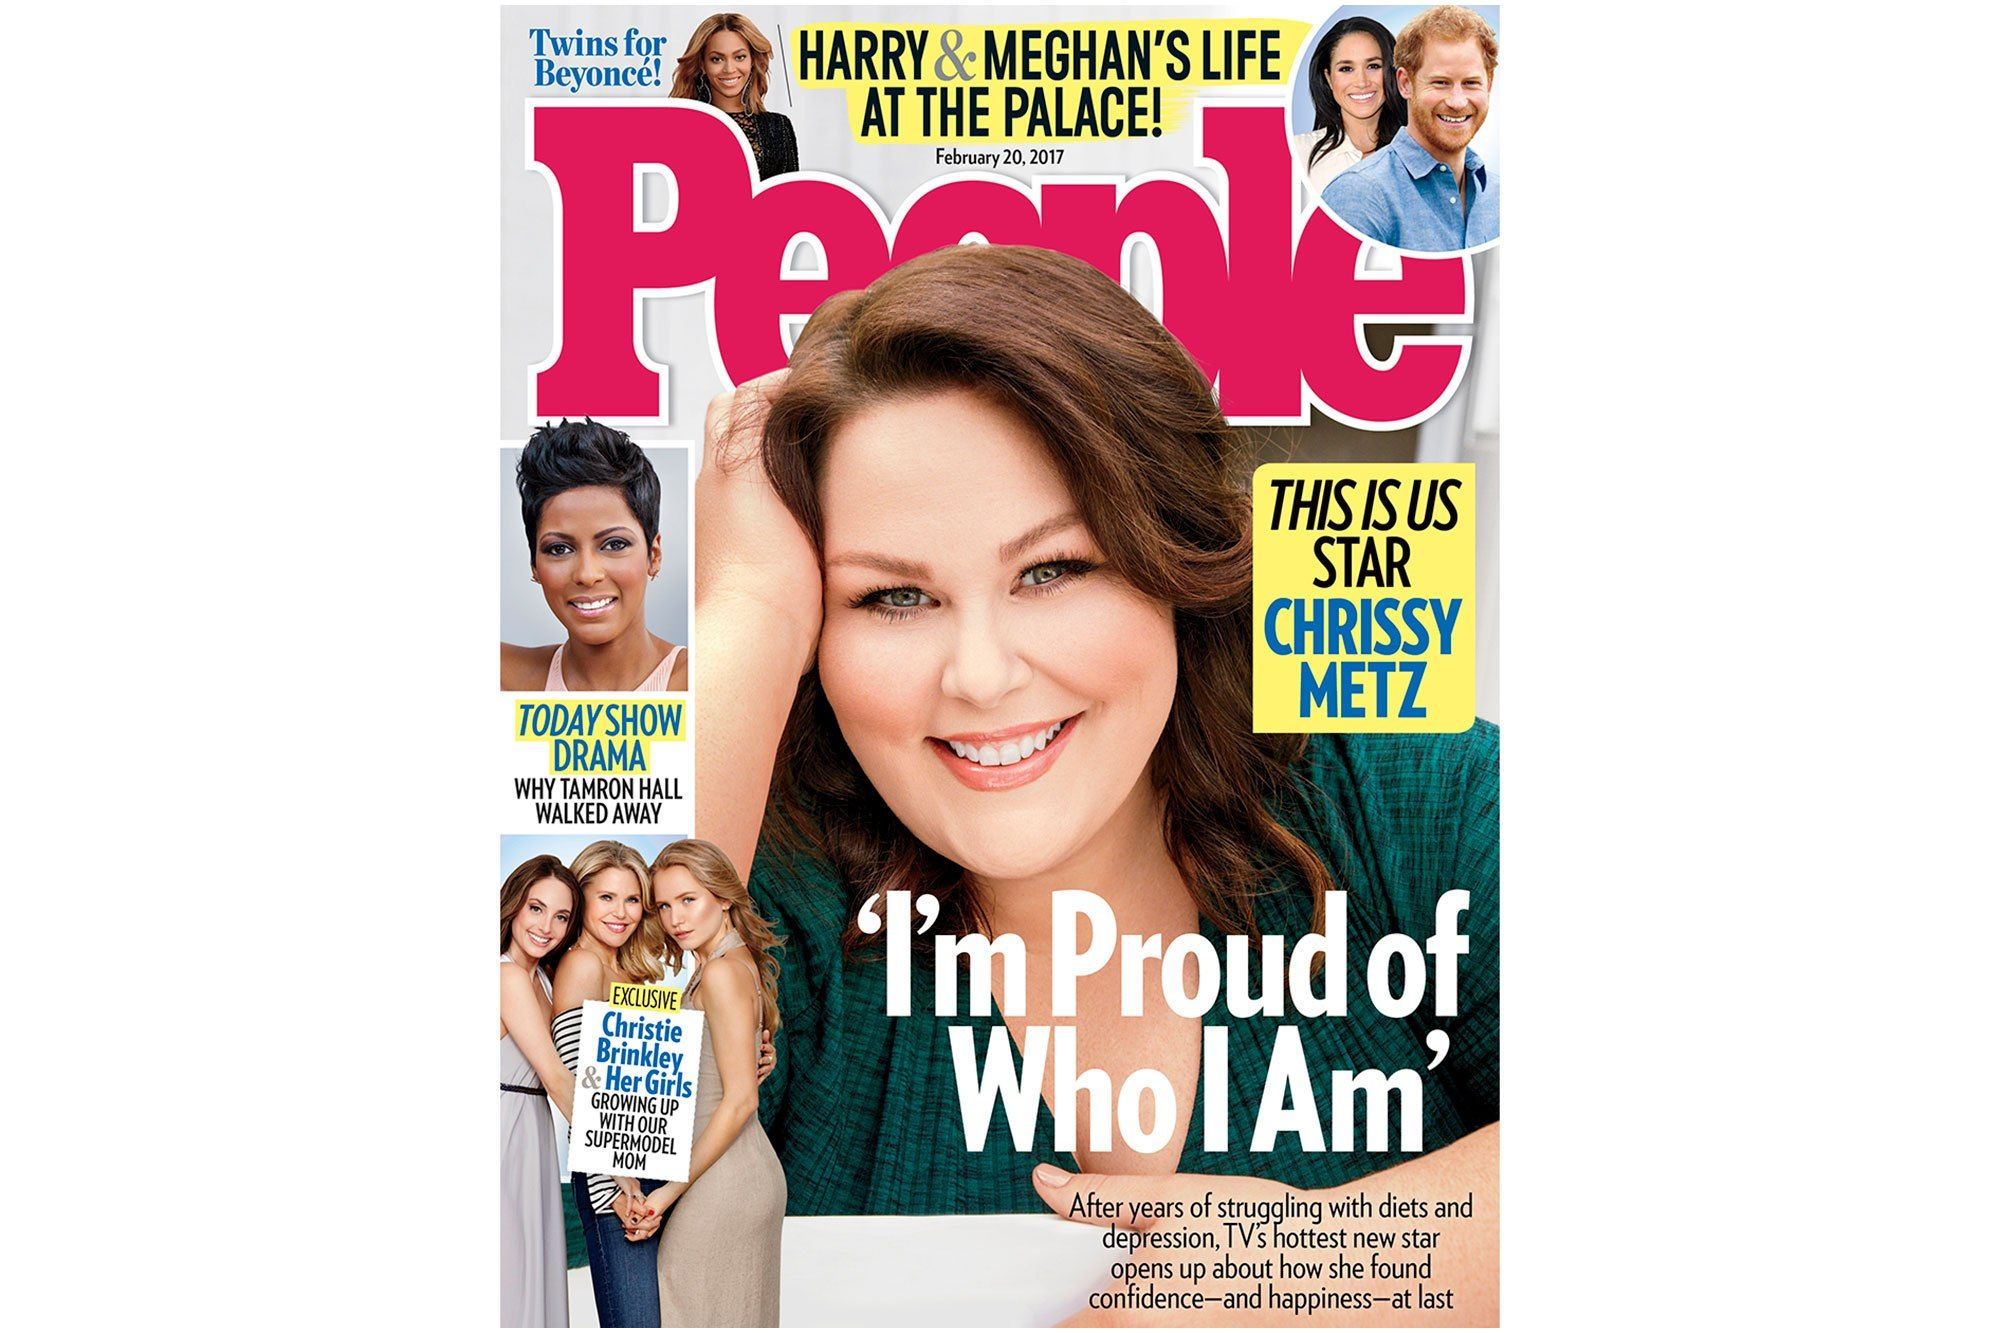 chrissy metz finding happiness 1